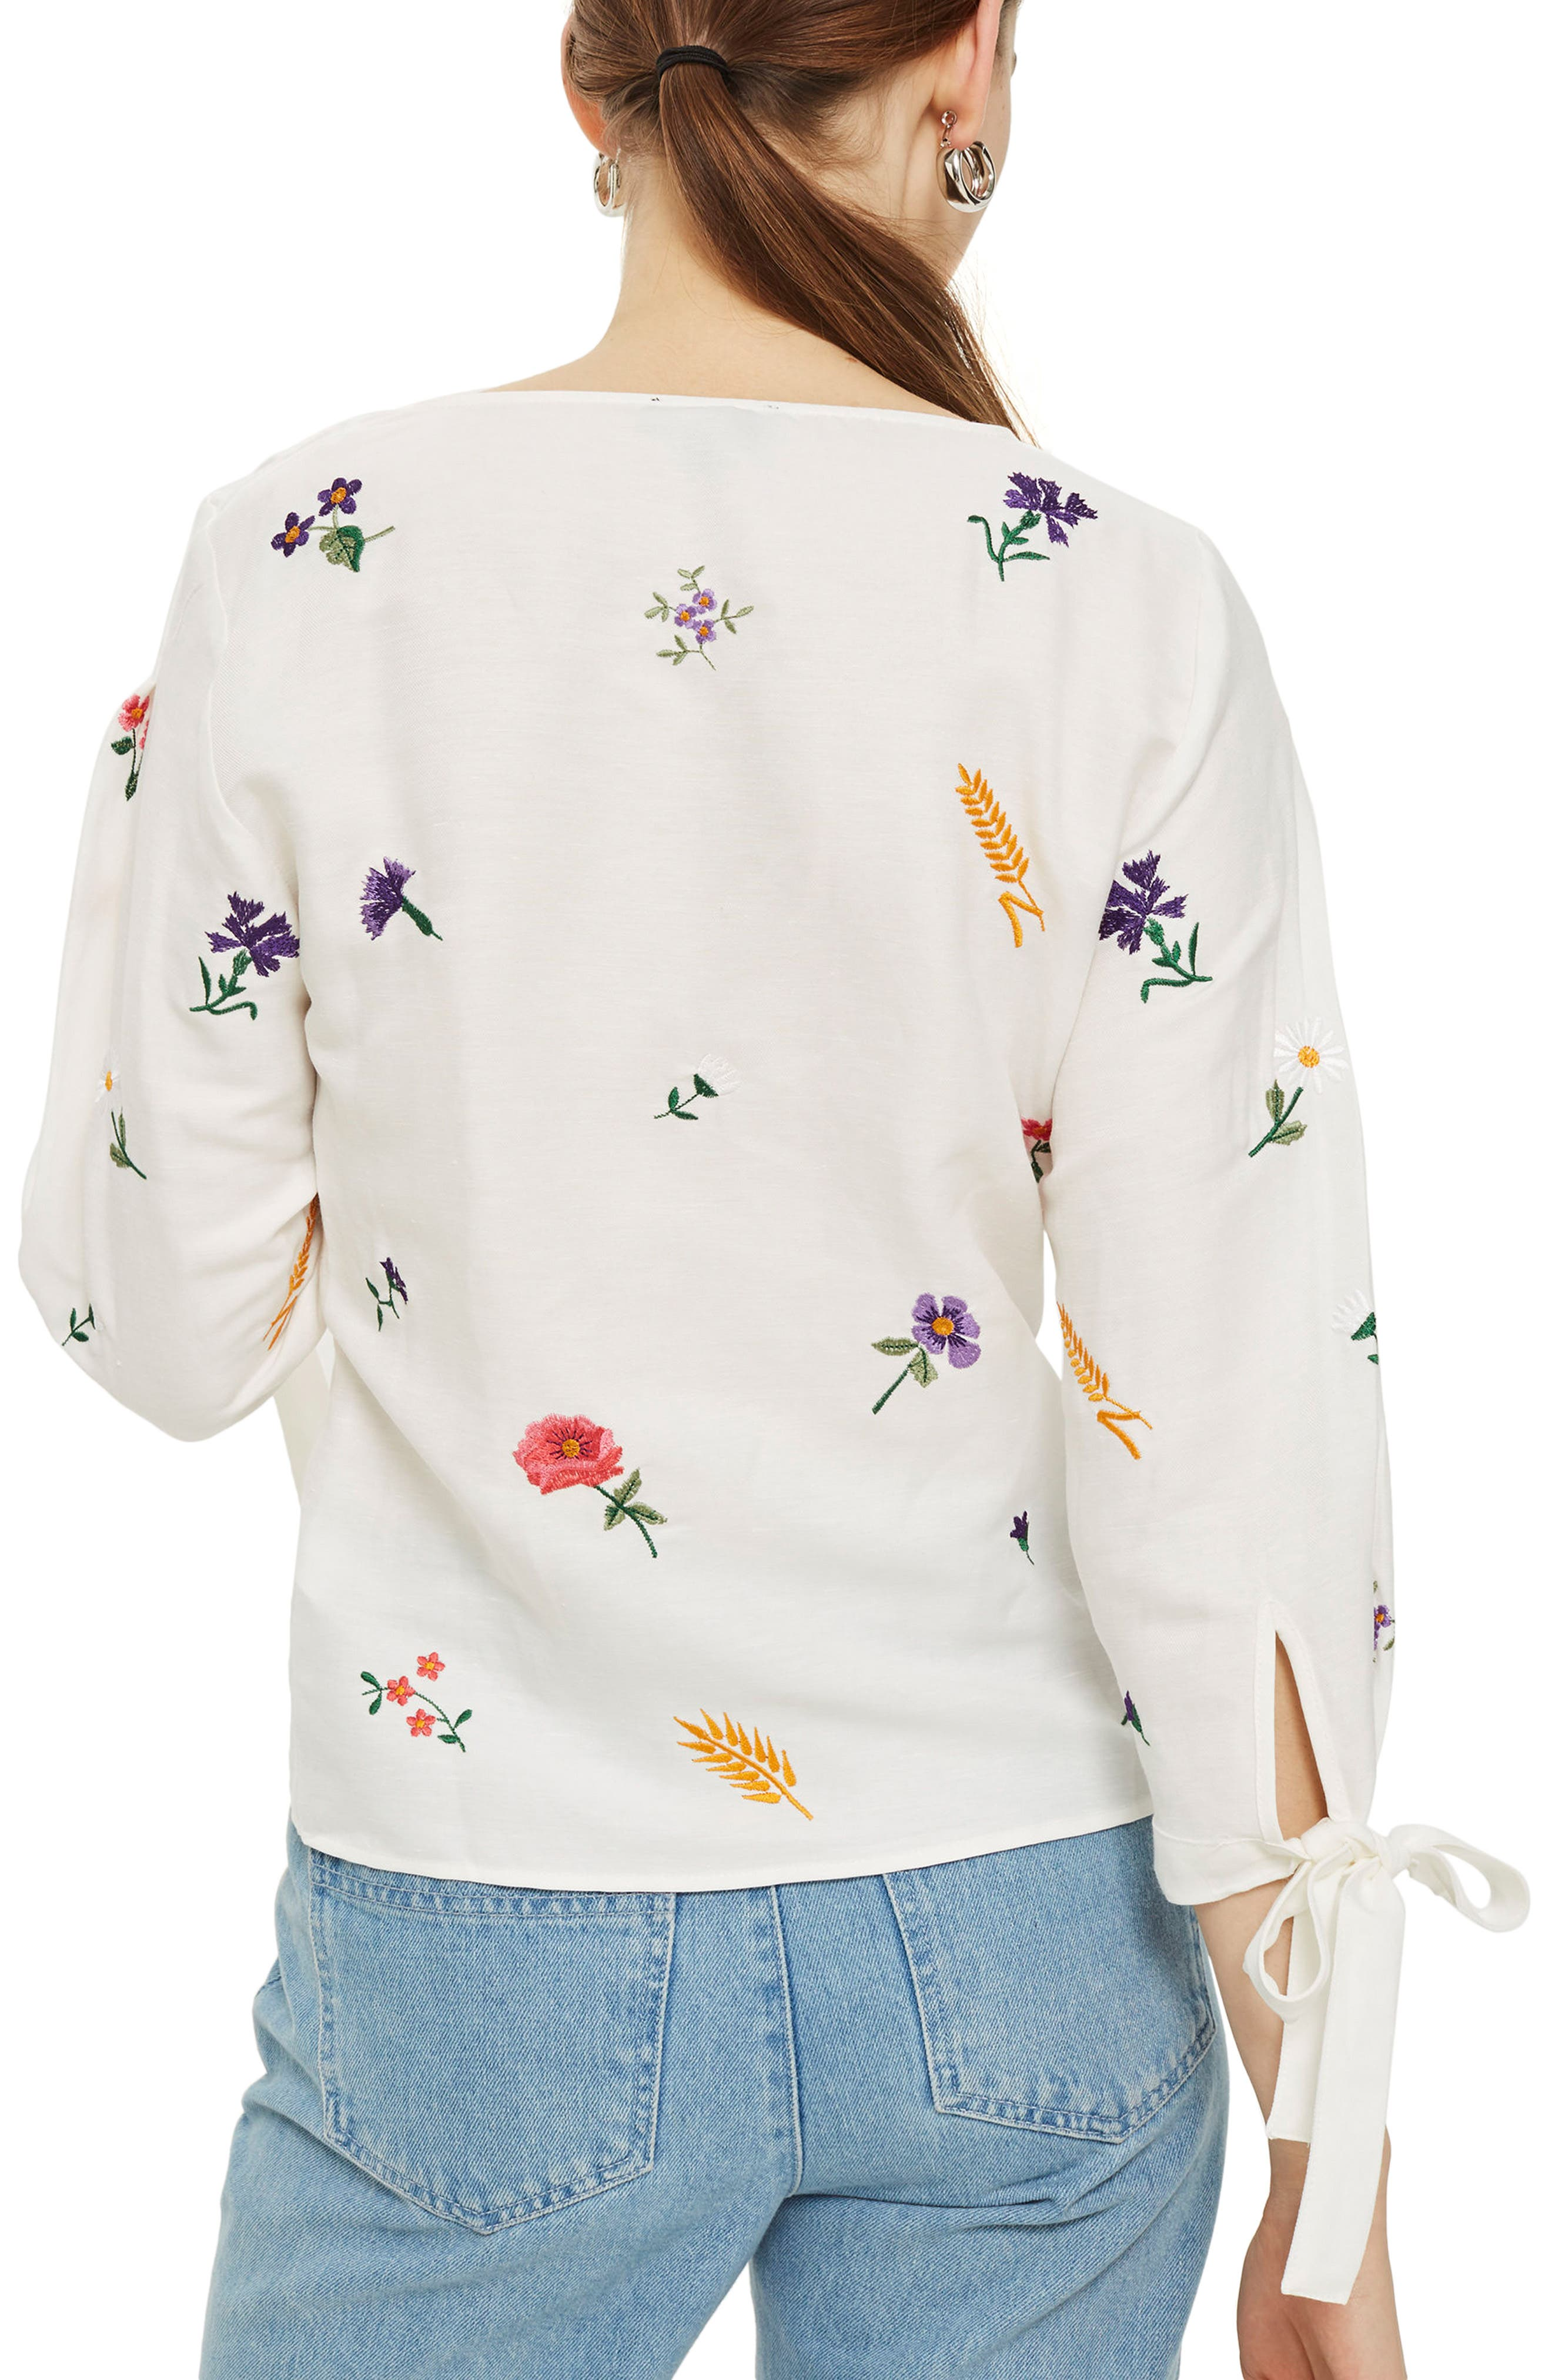 Field Embroidered Floral Blouse,                             Alternate thumbnail 2, color,                             Ivory